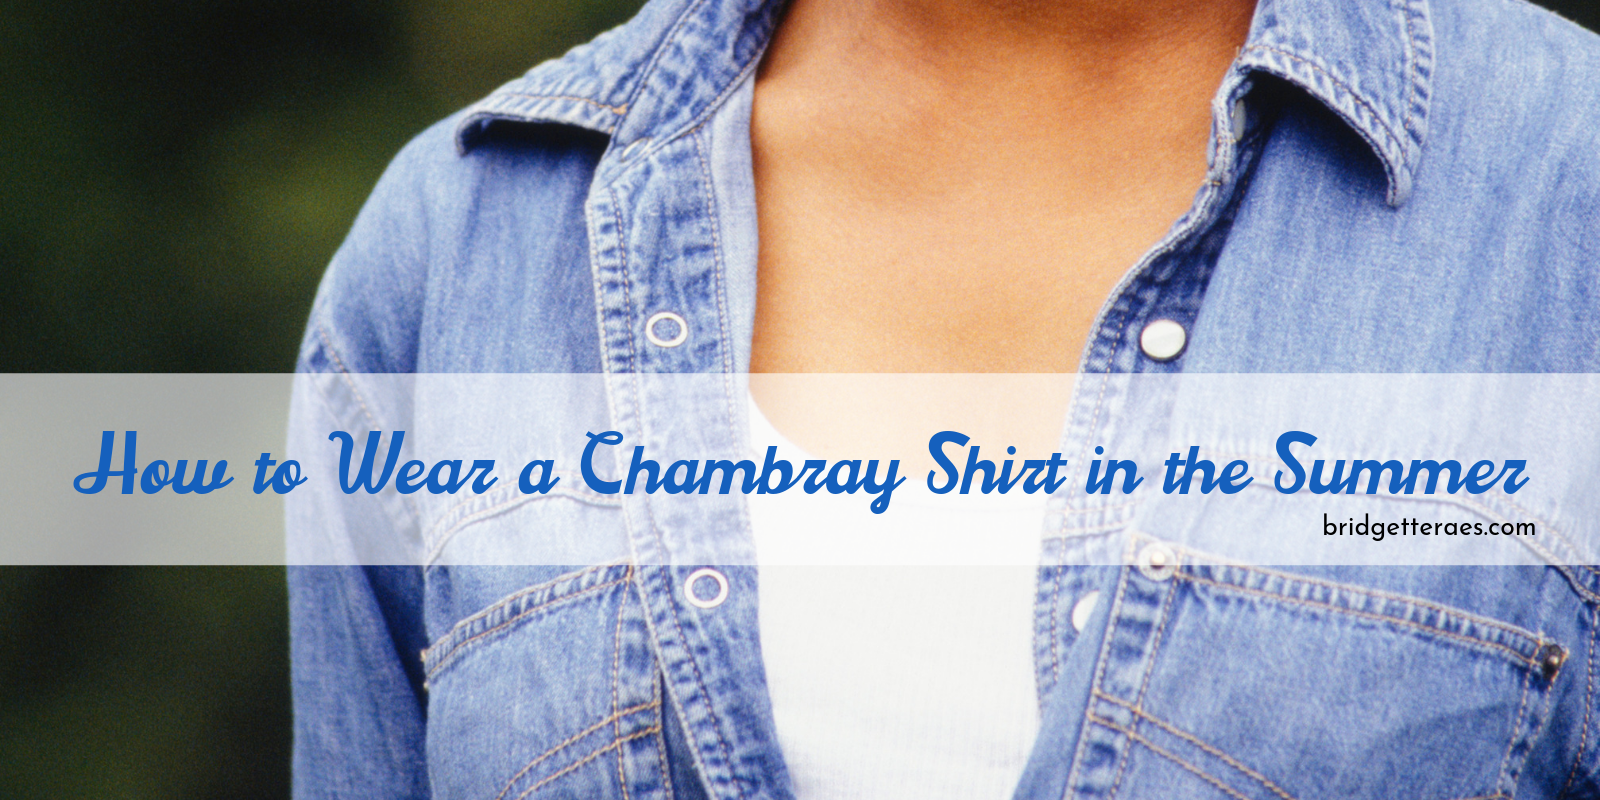 How to Wear a Chambray Shirt in the Summer